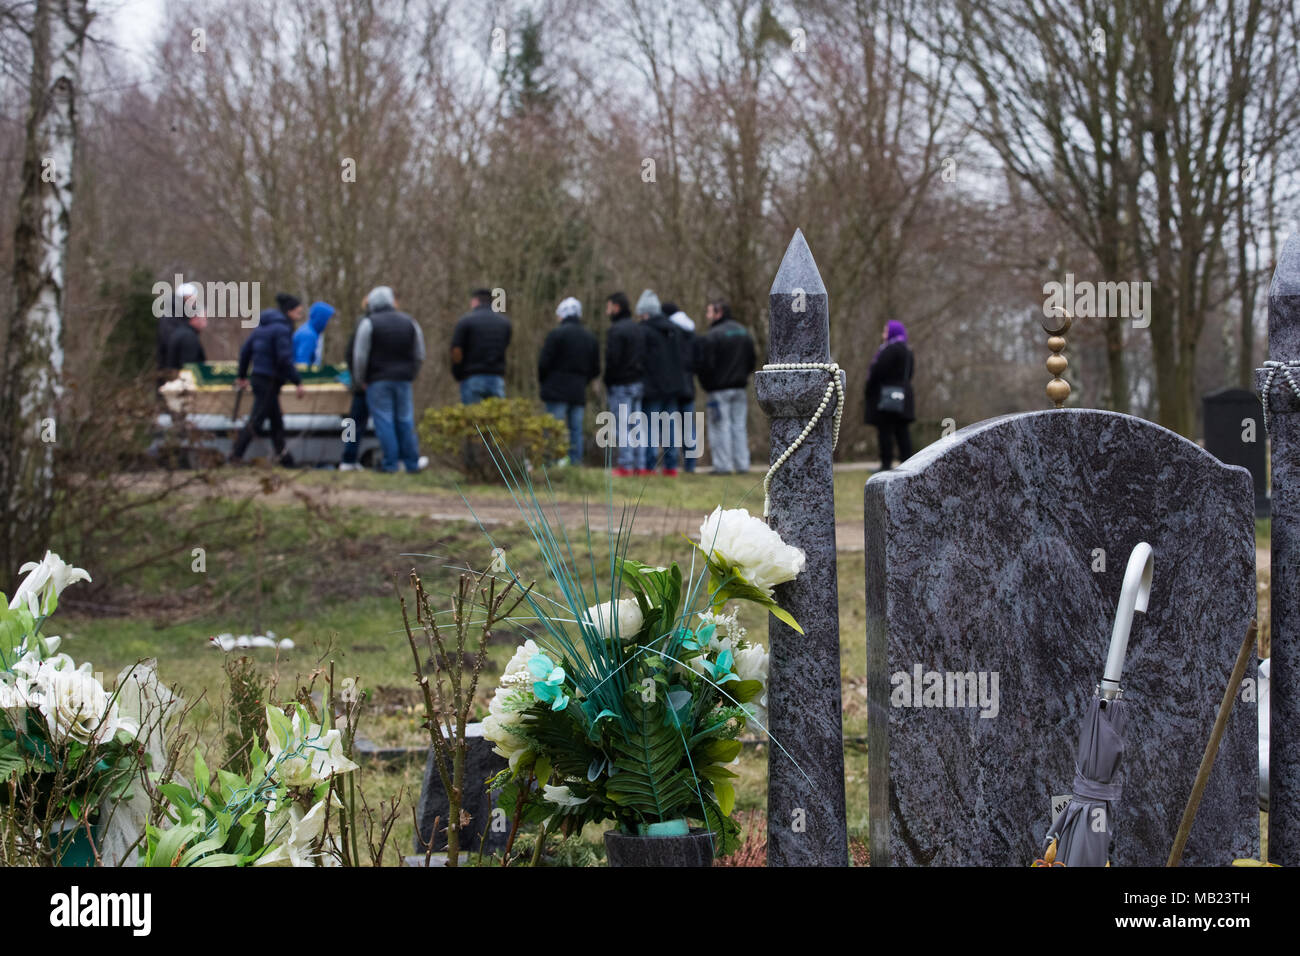 Grave coffin muslim stock photos grave coffin muslim stock images 15 march 2018 germany berlin attendees of a muslim funeral accompany the coffin izmirmasajfo Image collections